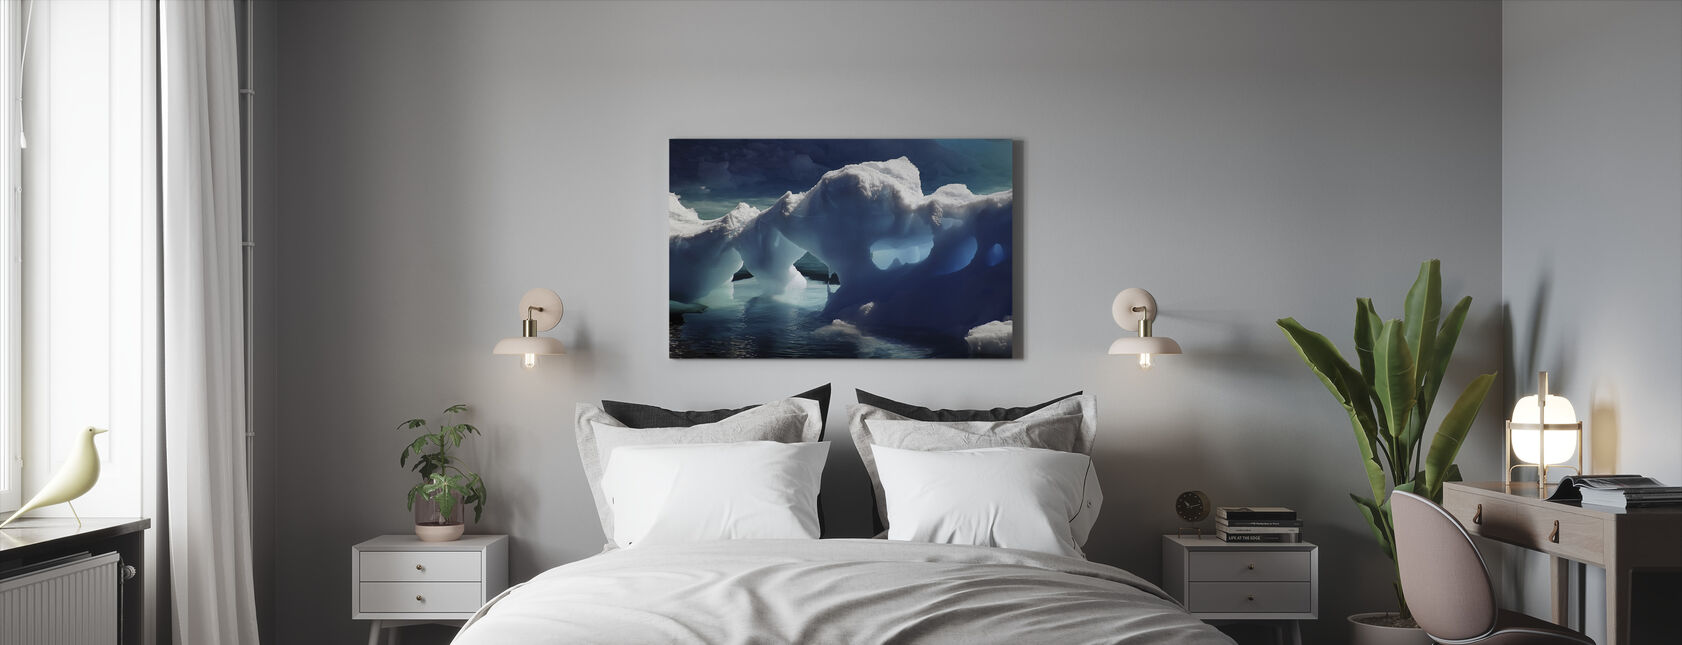 Antarctic Ice Caves - Canvas print - Bedroom